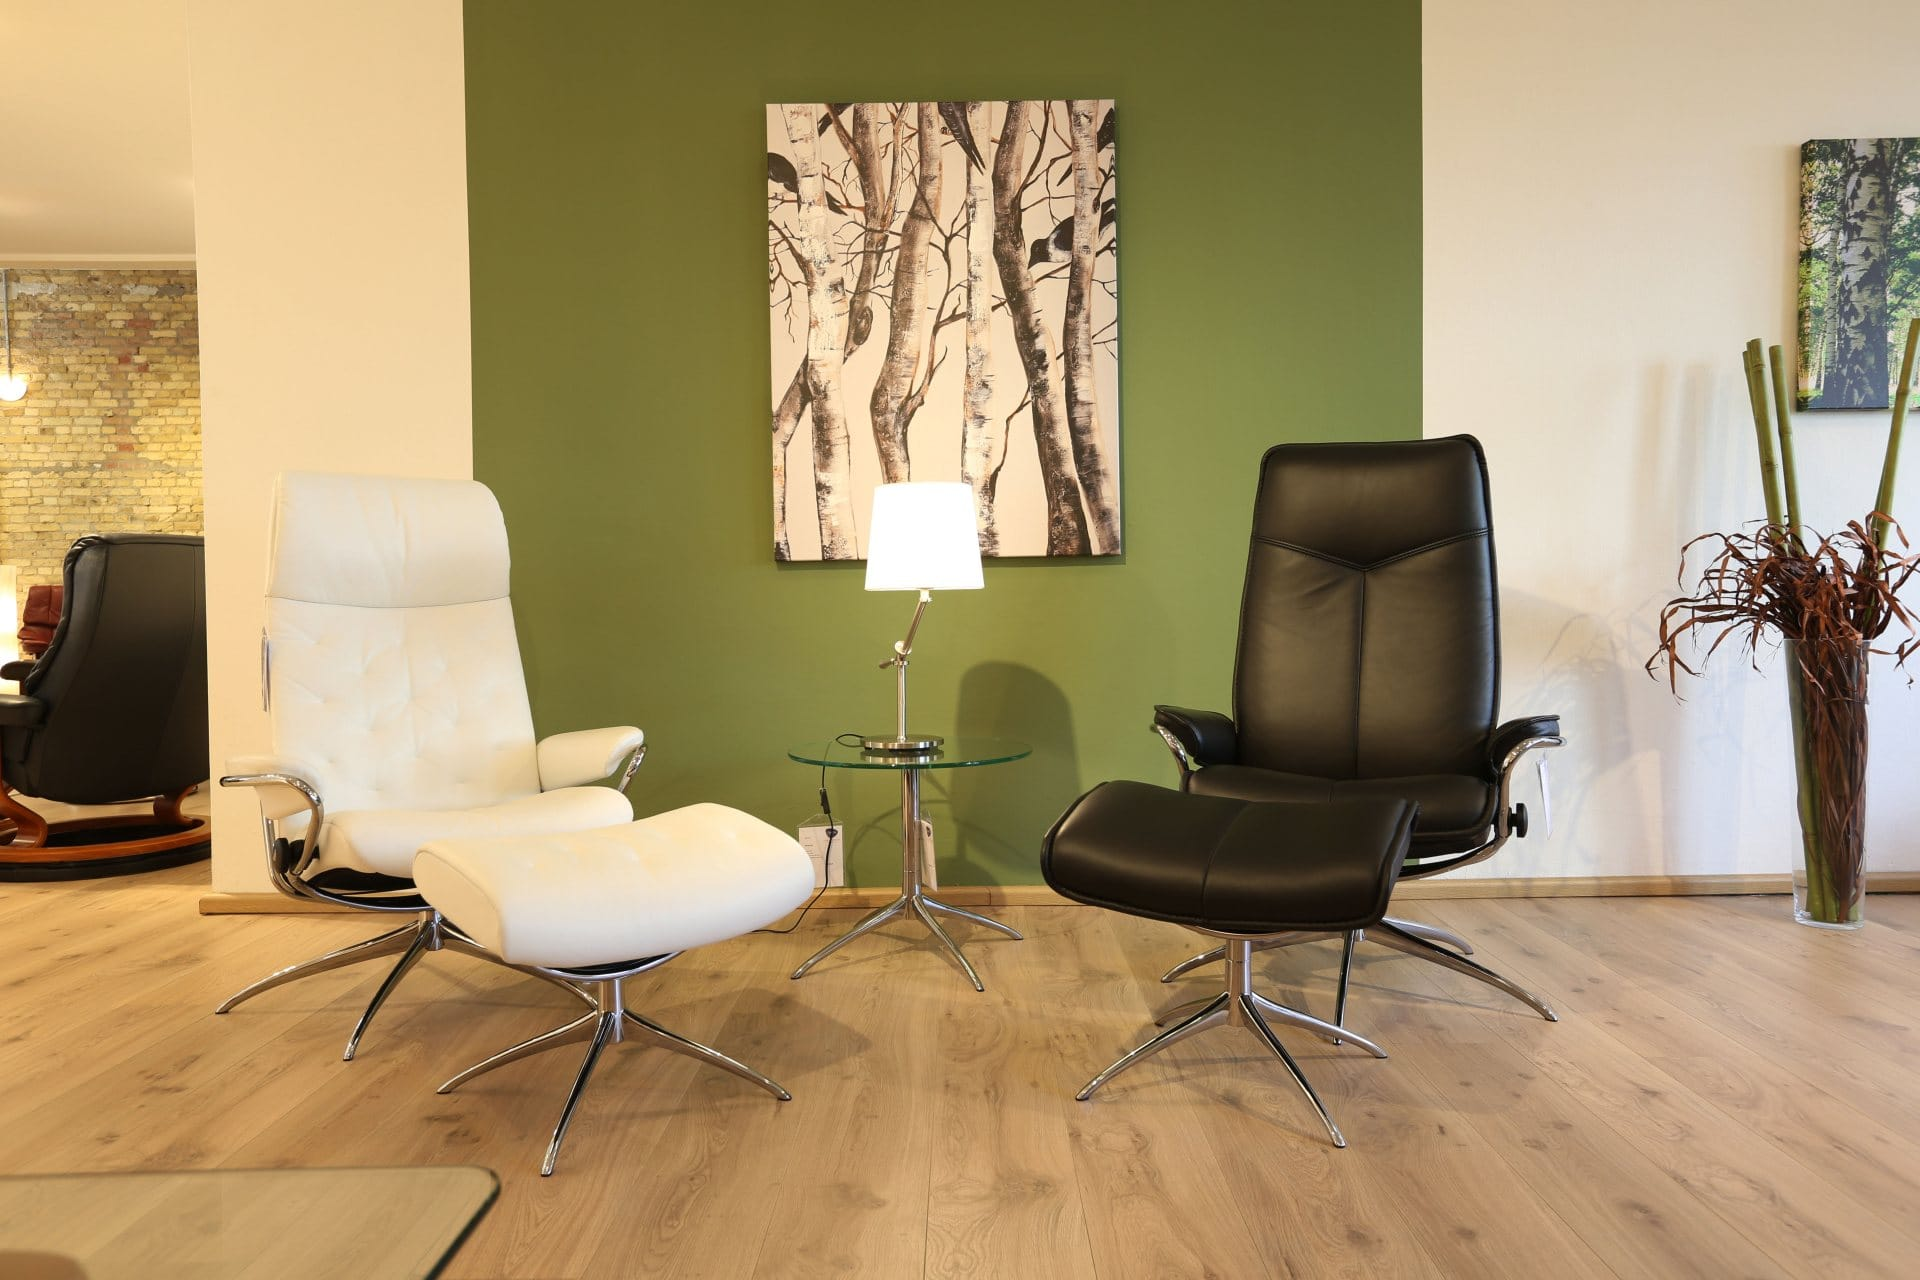 Rahaus Sessel Stressless Store House Of Comfort Berlin Pankow